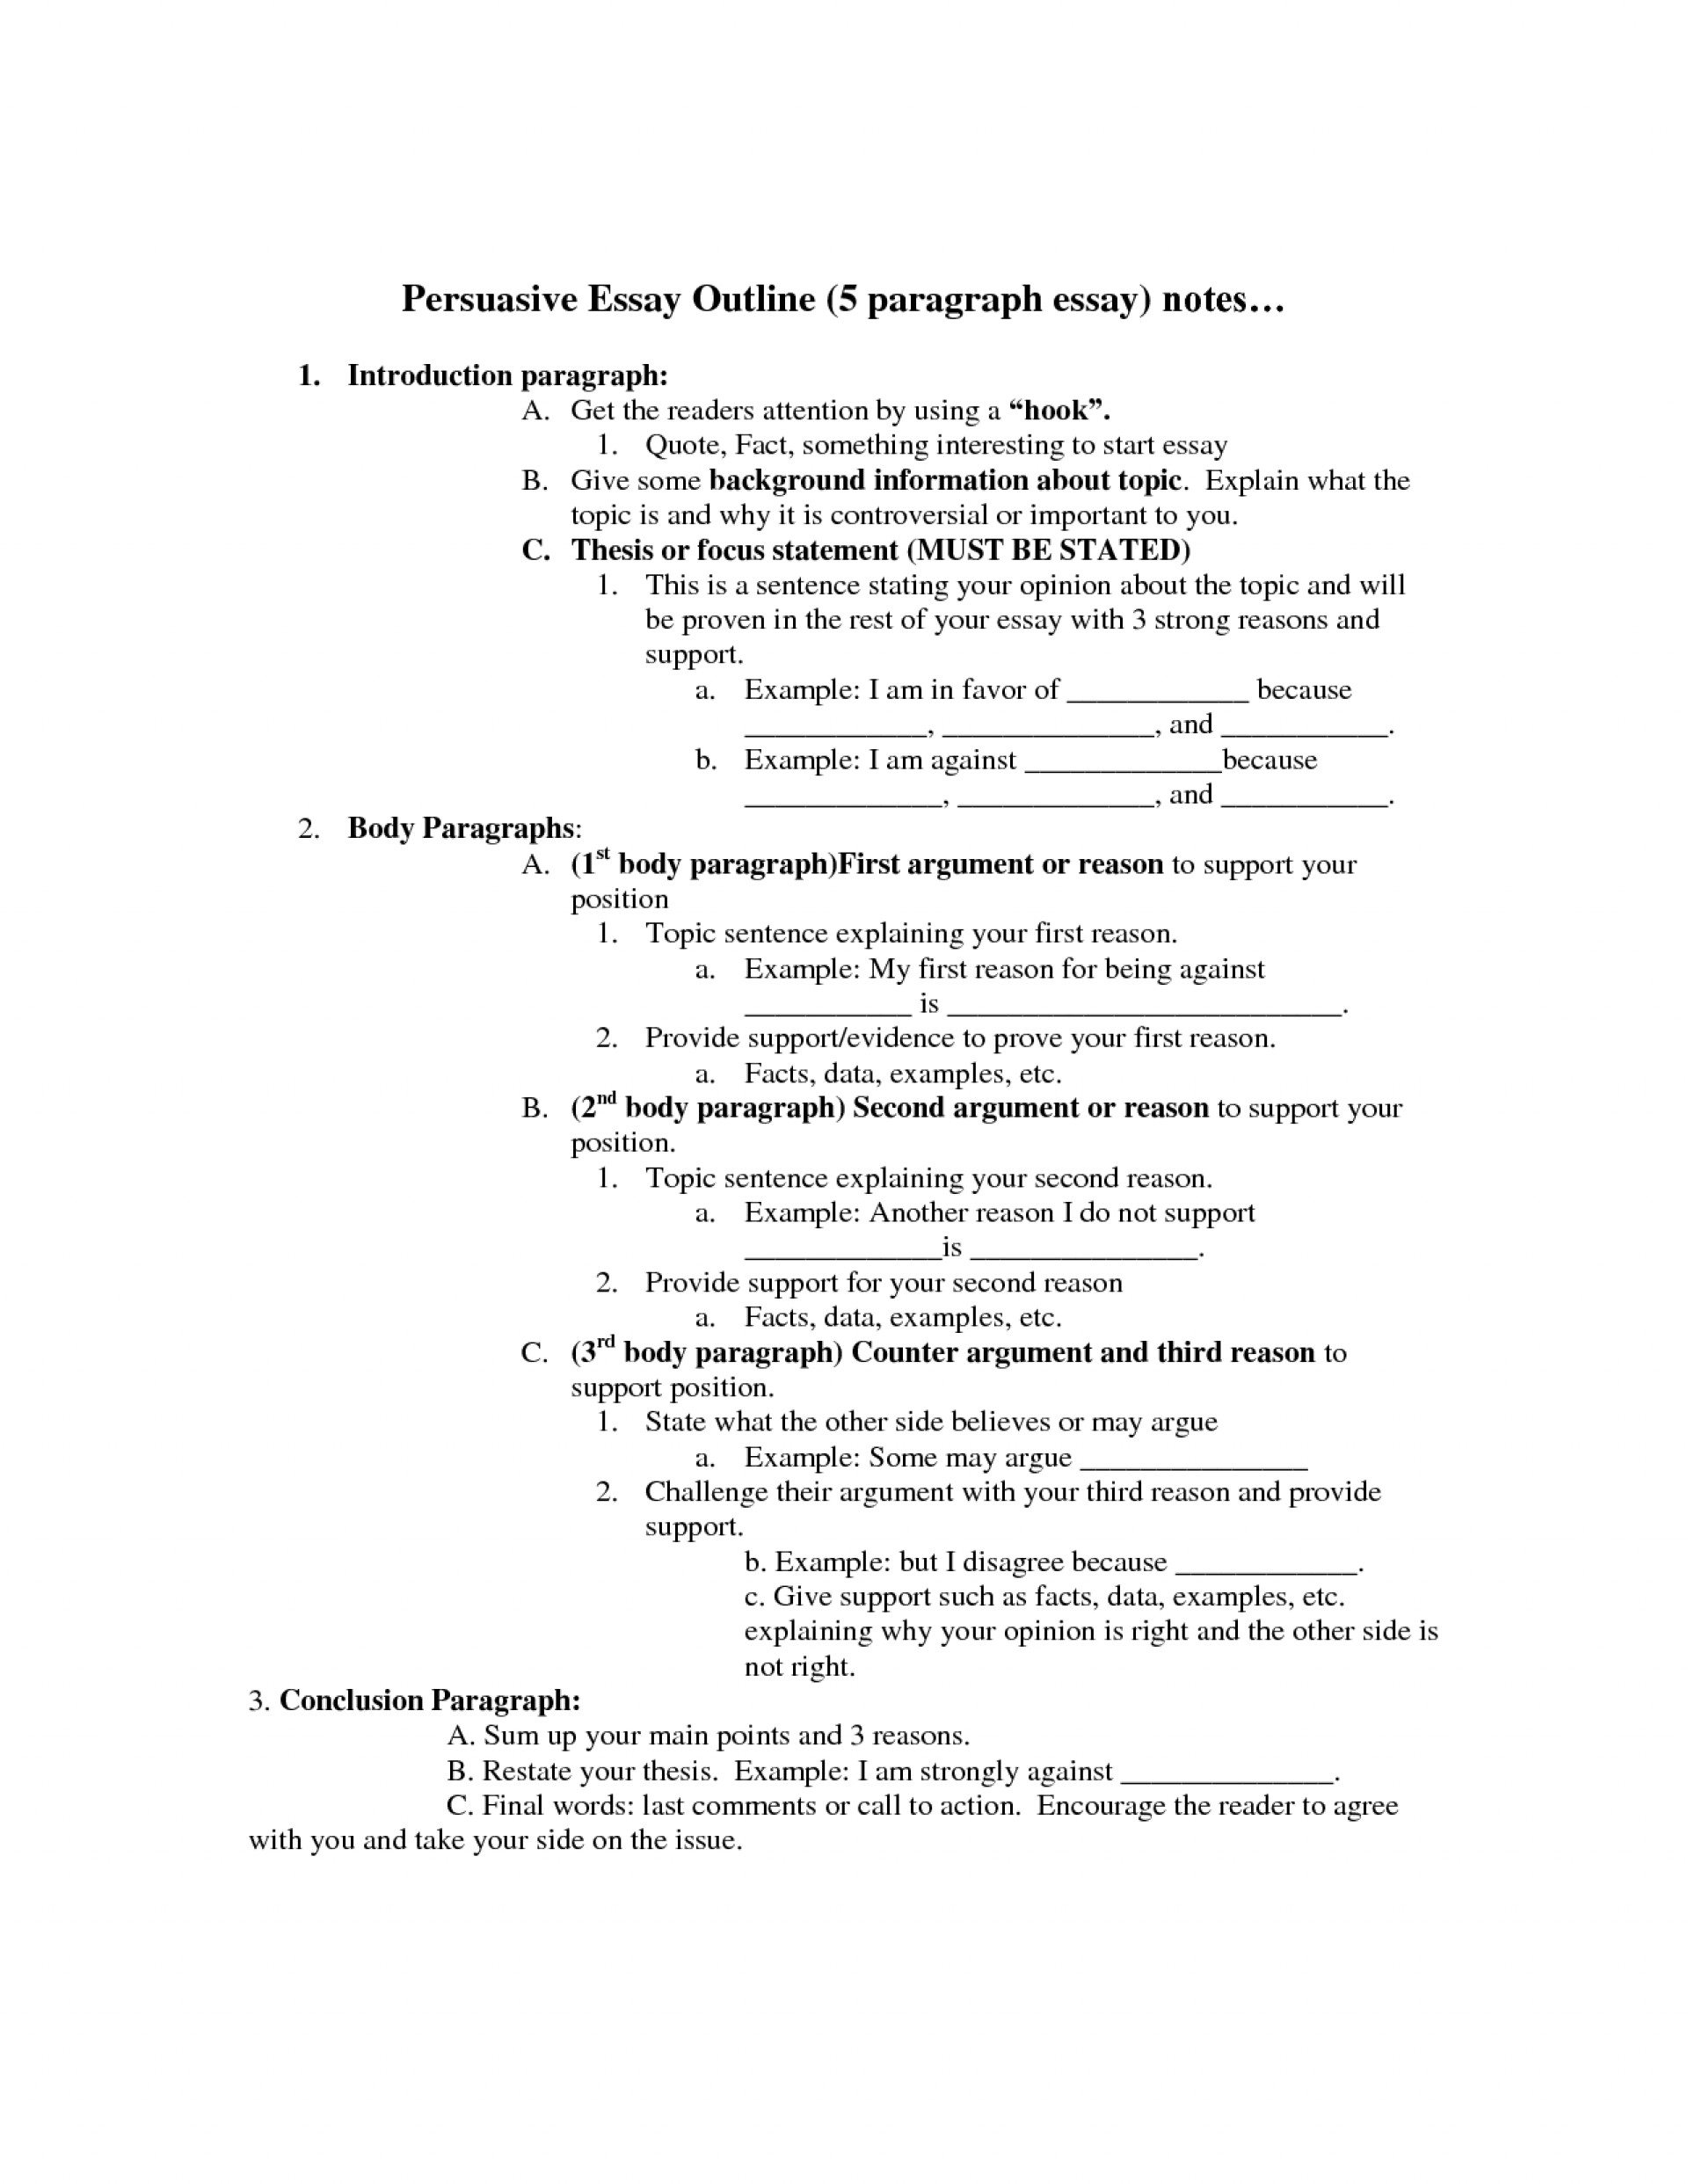 006 Persuasive Essay Outline Unbelievable Worksheet Paper Examples Template 5th Grade 1920